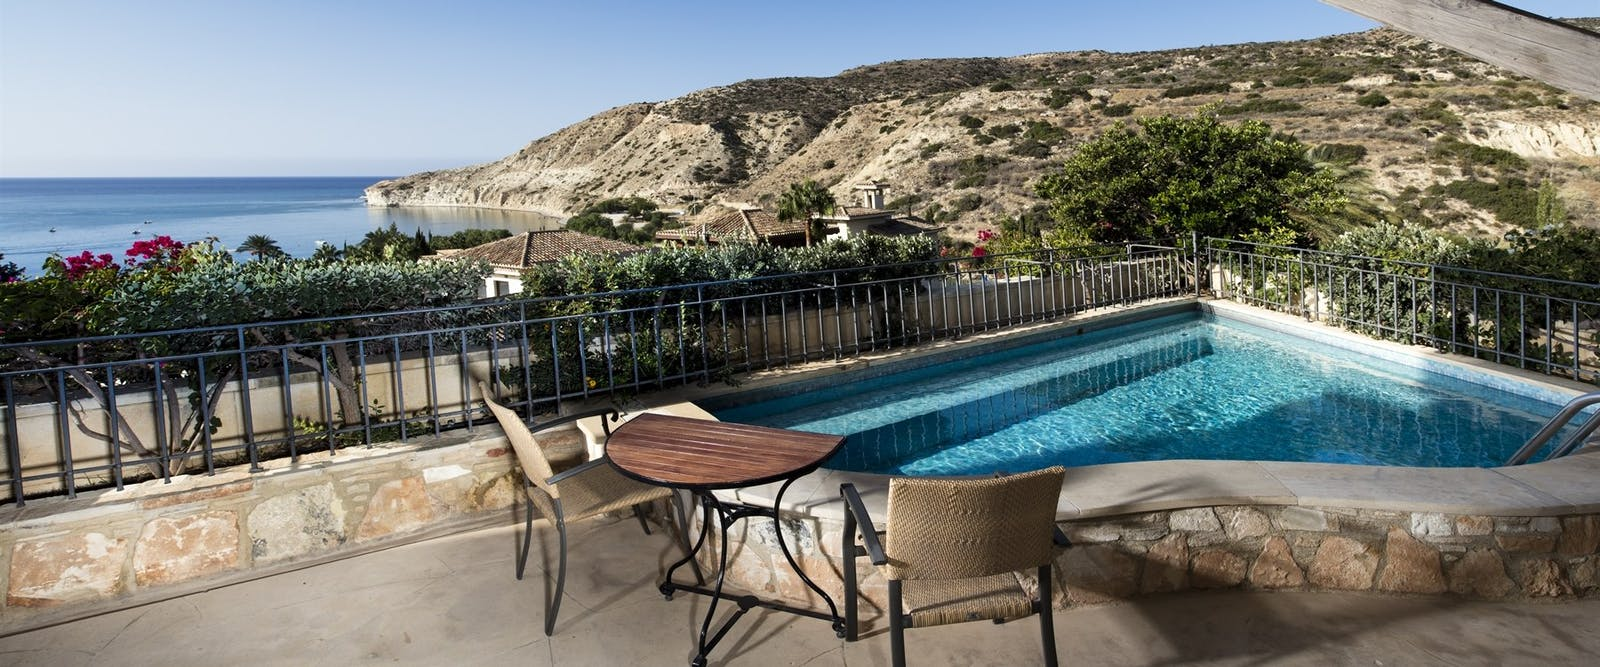 Eagles Nest Plunge Pool Terrace, Columbia Beach Resort, Pissouri Bay, Cyprus